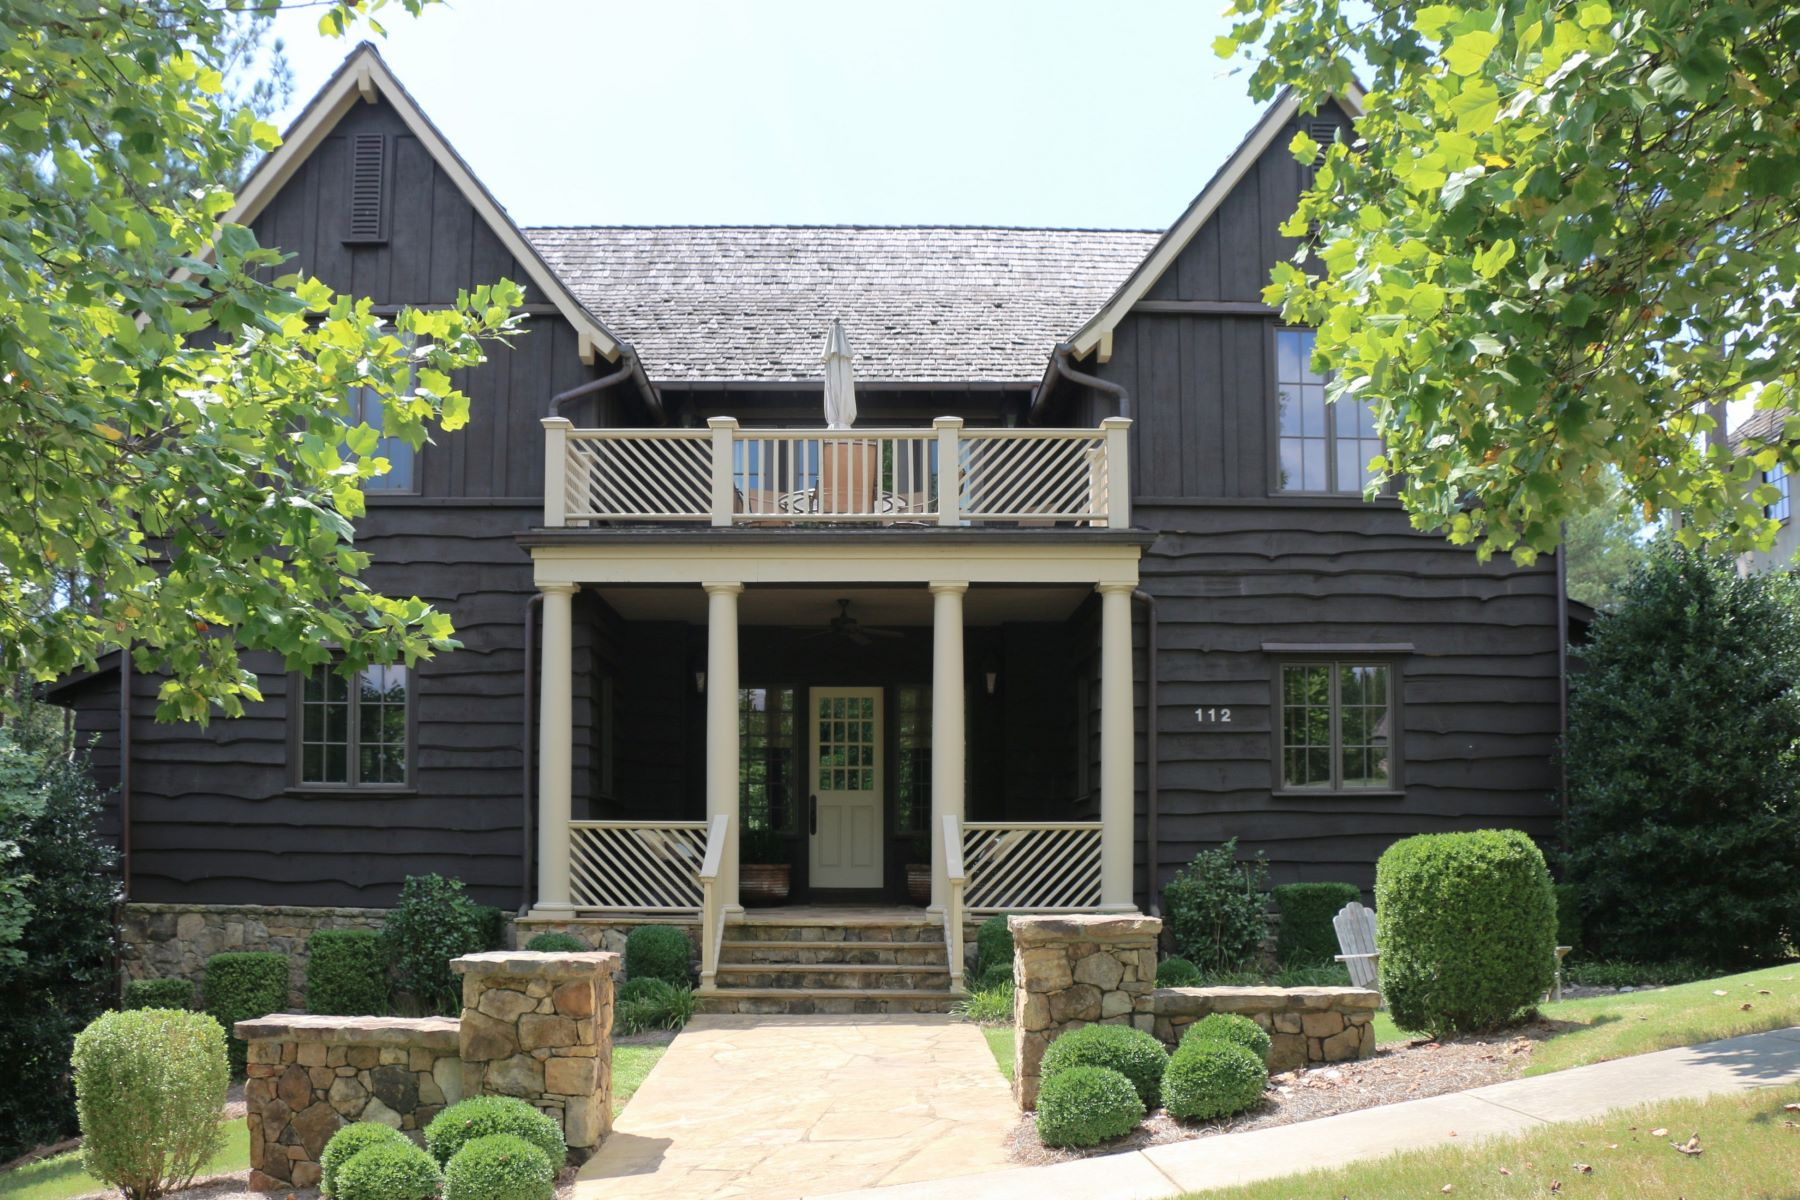 Single Family Home for Sale at Summerour's Finest Inspiration on the Great Lawn 112 S. Lawn Drive The Reserve At Lake Keowee, Sunset, South Carolina, 29685 United States